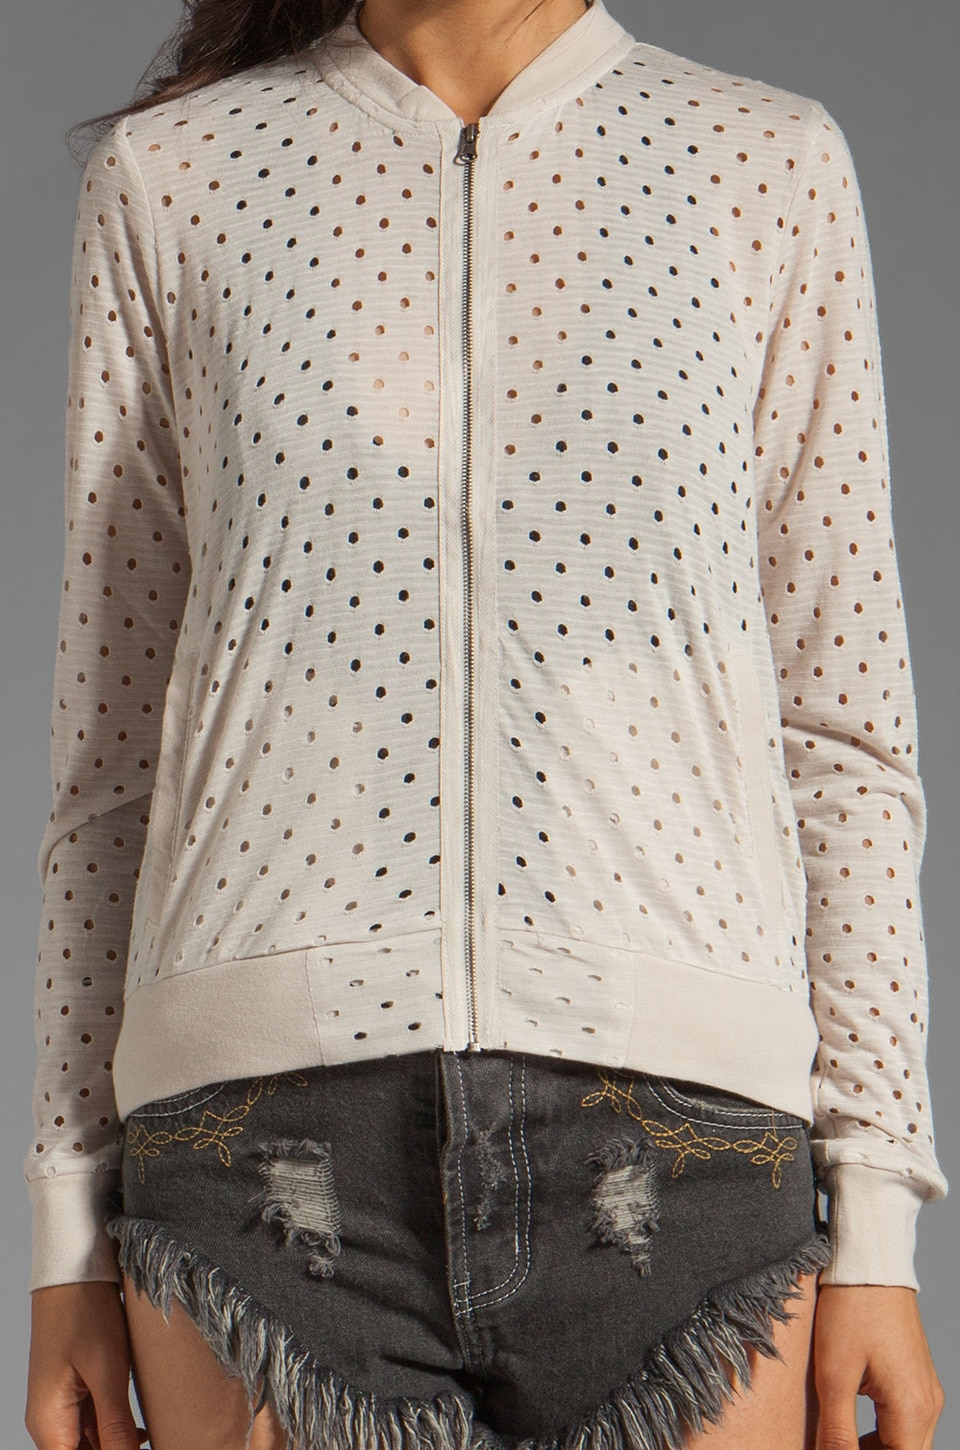 BB Dakota Basswood Eyelet Knit Bomber in Whitecap Beige